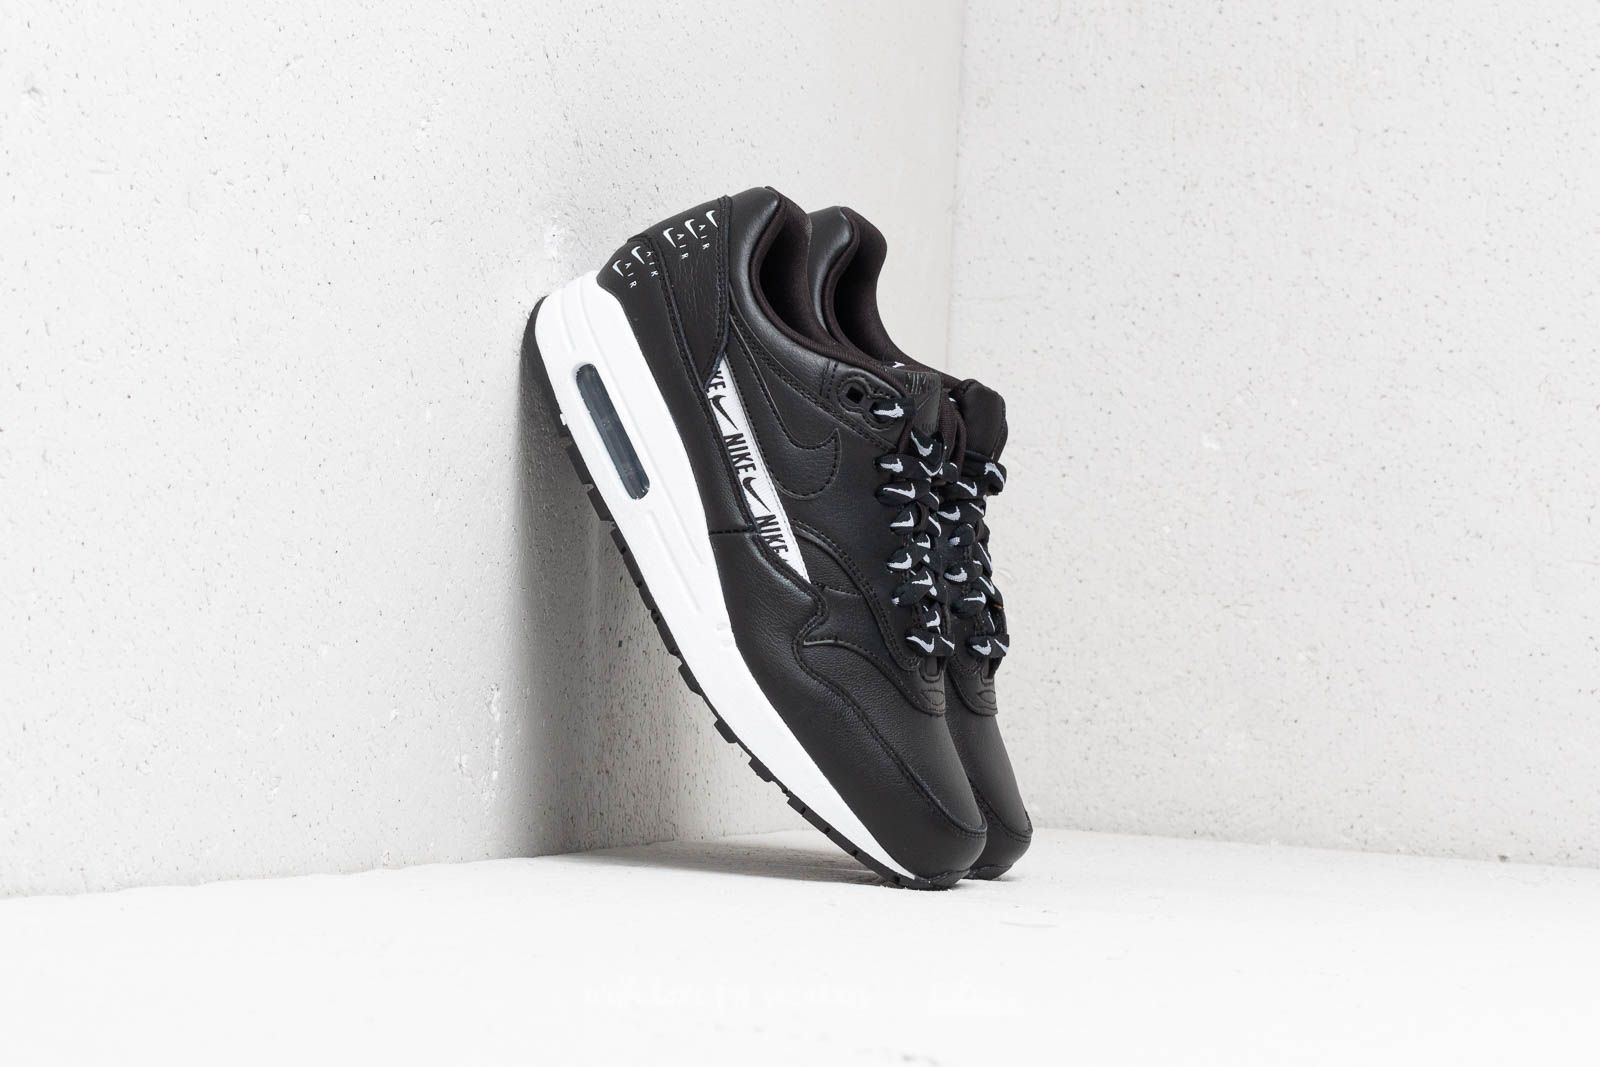 Nike Wmns Air Max 1 SE Black  Black-White at a great price 143 c1b67ef1f3